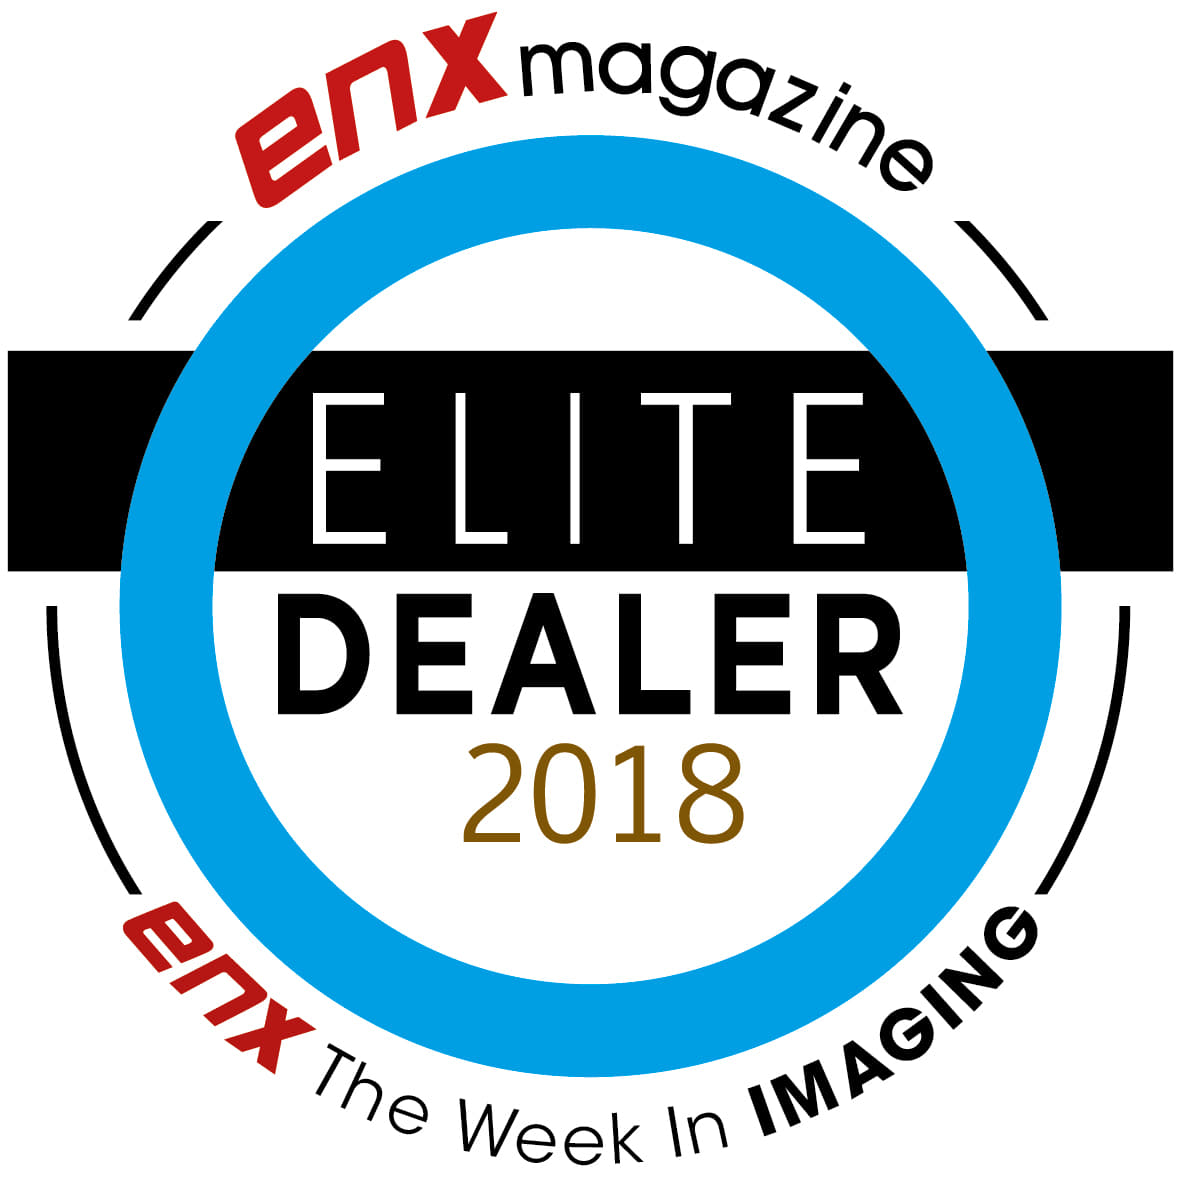 Elite dealer logo big